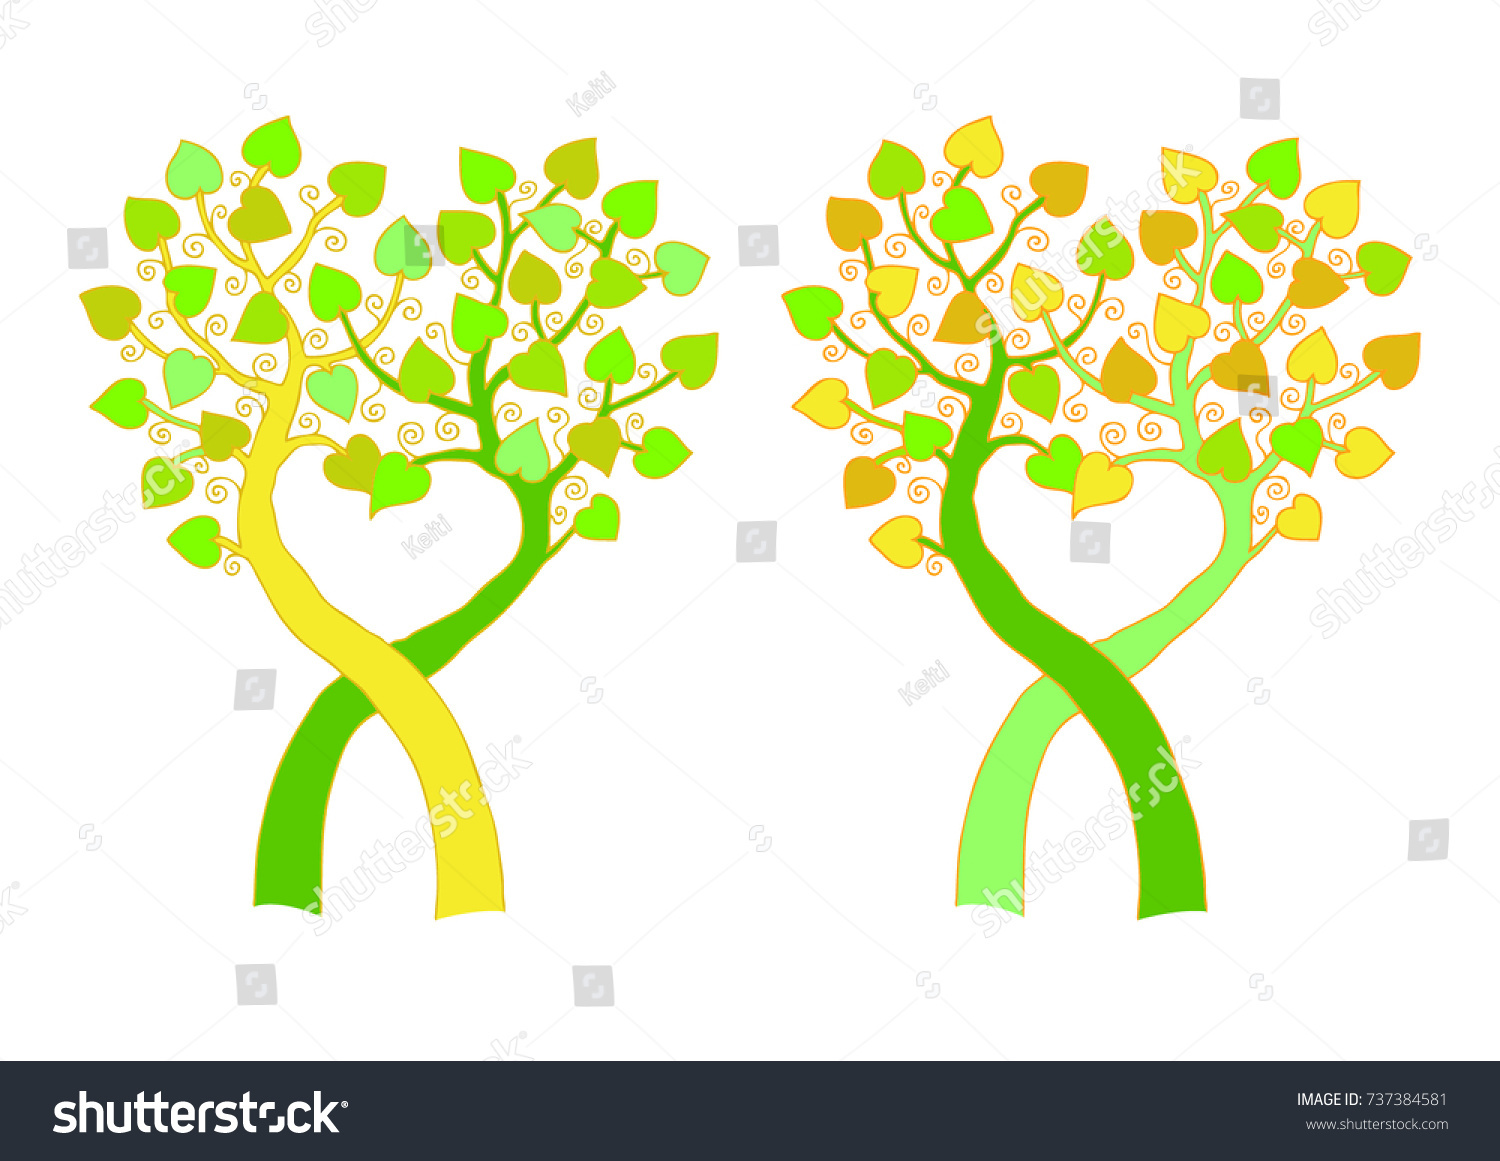 Two Tree Heart Two Color Variants Stock Vector 737384581 - Shutterstock